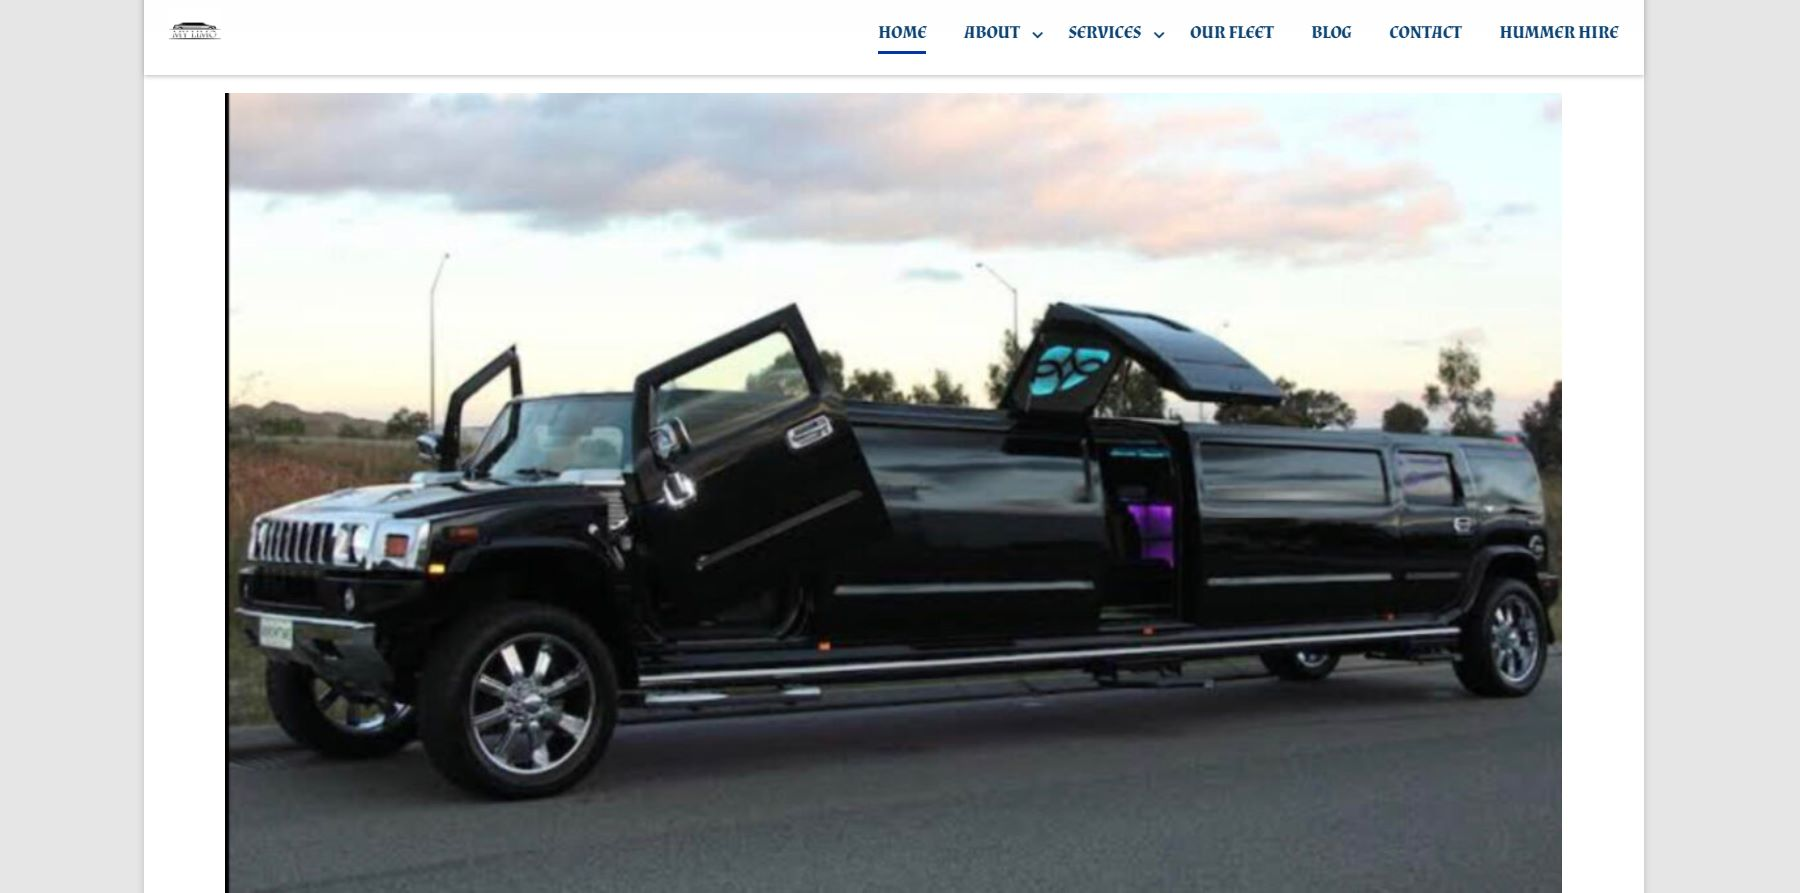 My Limo & Hummer Hire Melbourne